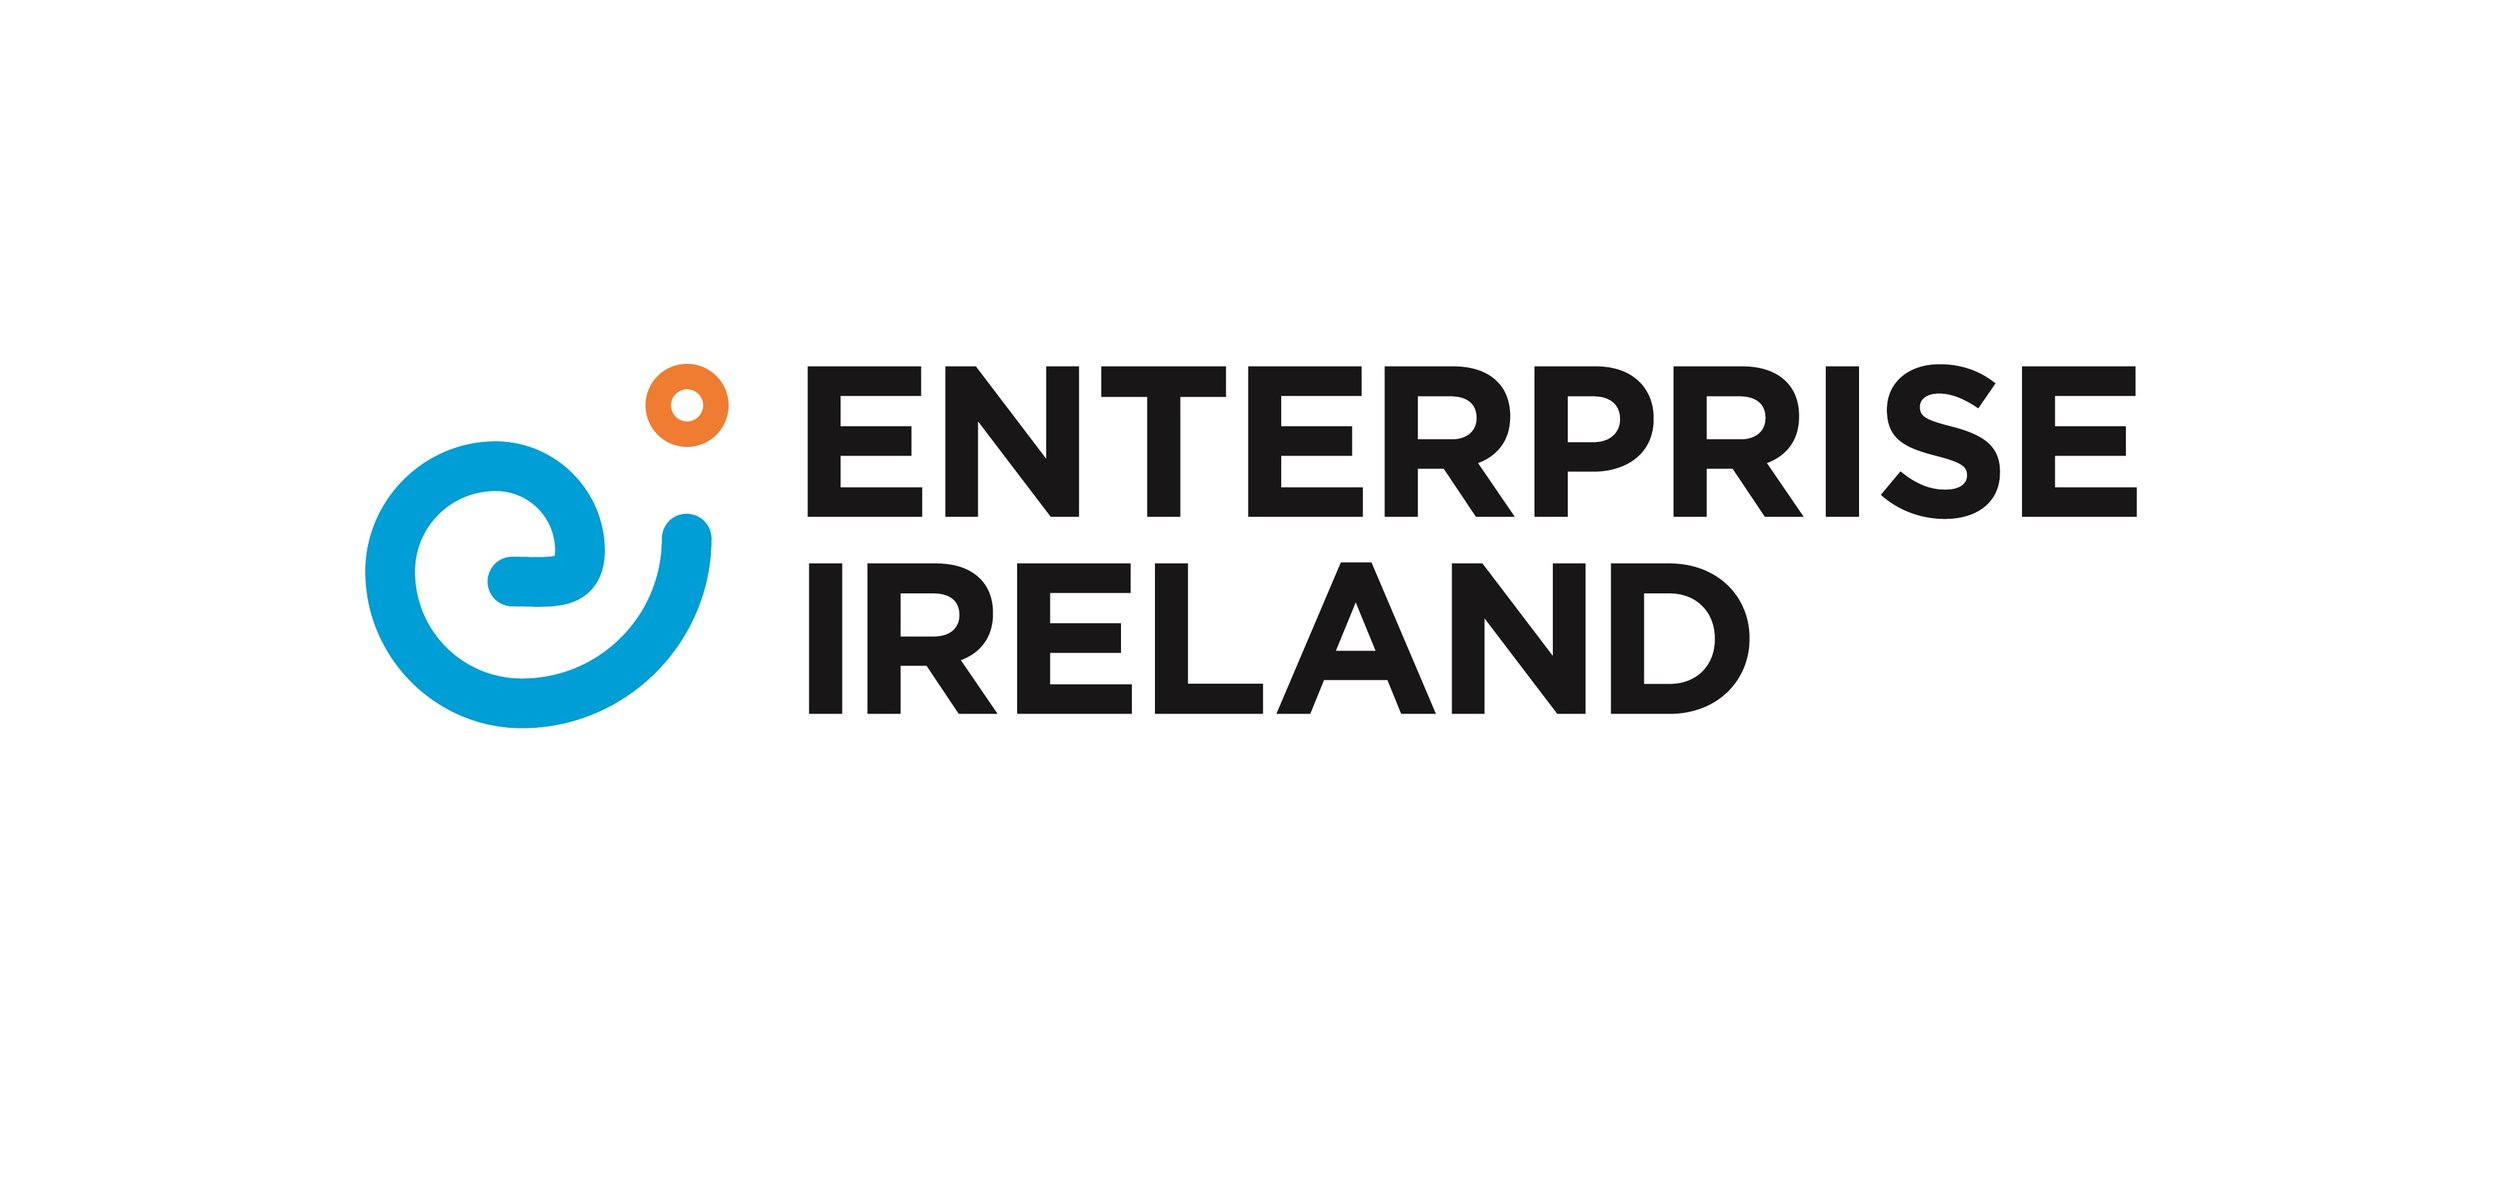 Enterprise Ireland - Enterprise Ireland is the government organisation responsible for the development and growth of Irish enterprises in world markets. We work in partnership with Irish enterprises to help them start, grow, innovate and win export sales in global markets. In this way, we support sustainable economic growth, regional development and secure employment.